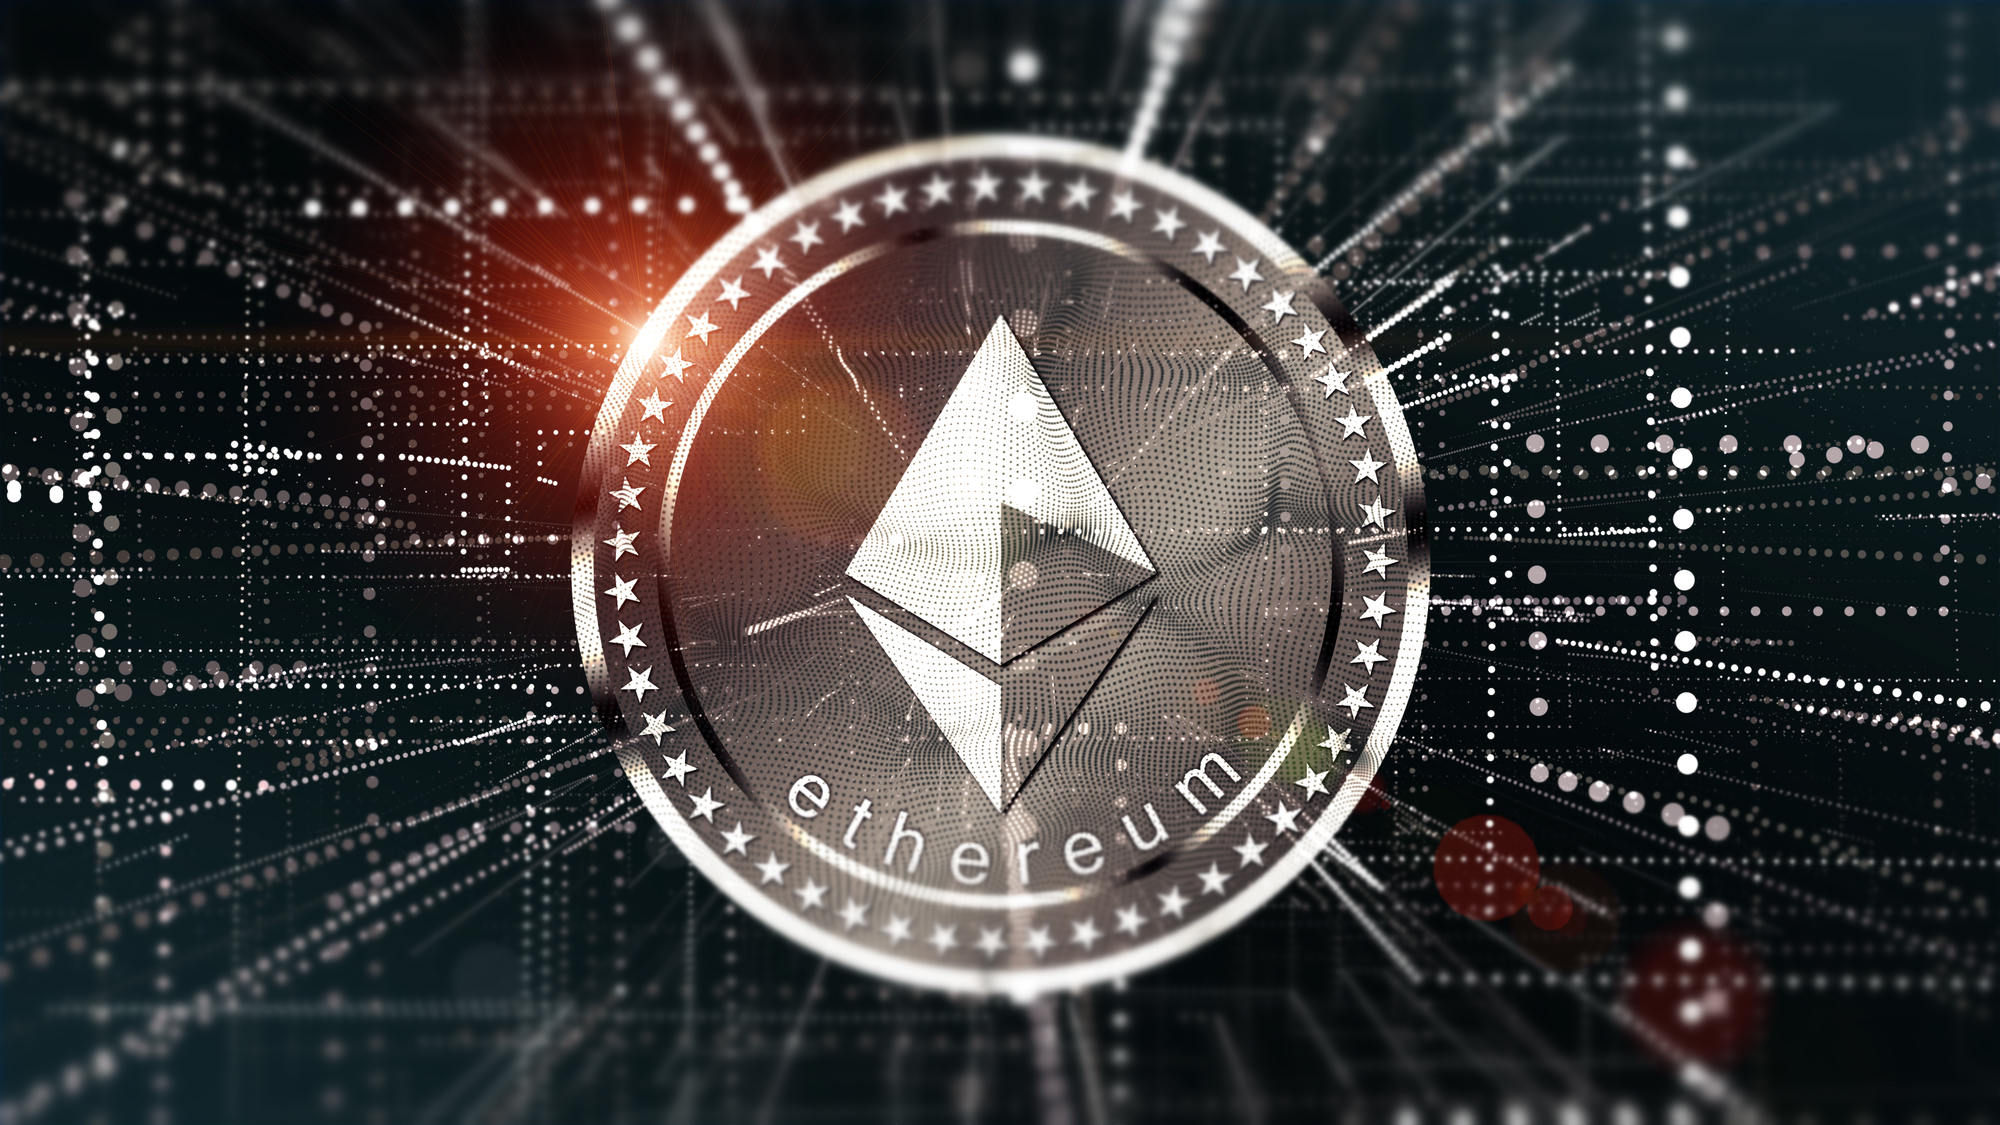 eth alepietrocola - What is Ethereum? The Ultimate Beginners Guide.